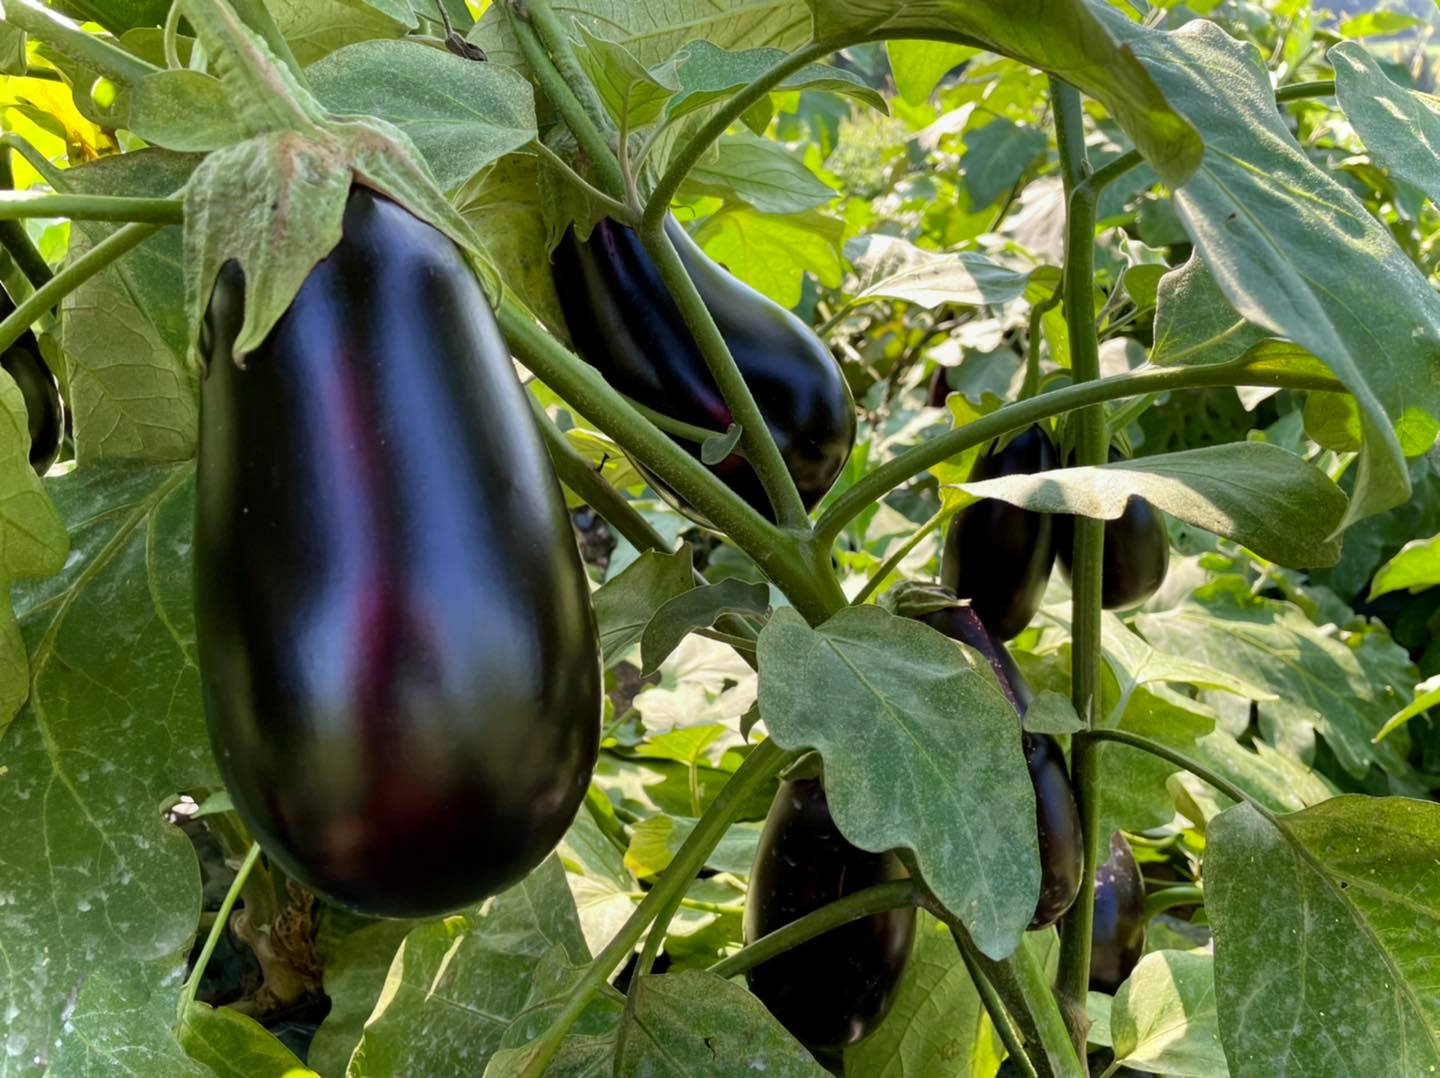 Grims Orchard & Family Farms pick your own eggplants and other vegetables